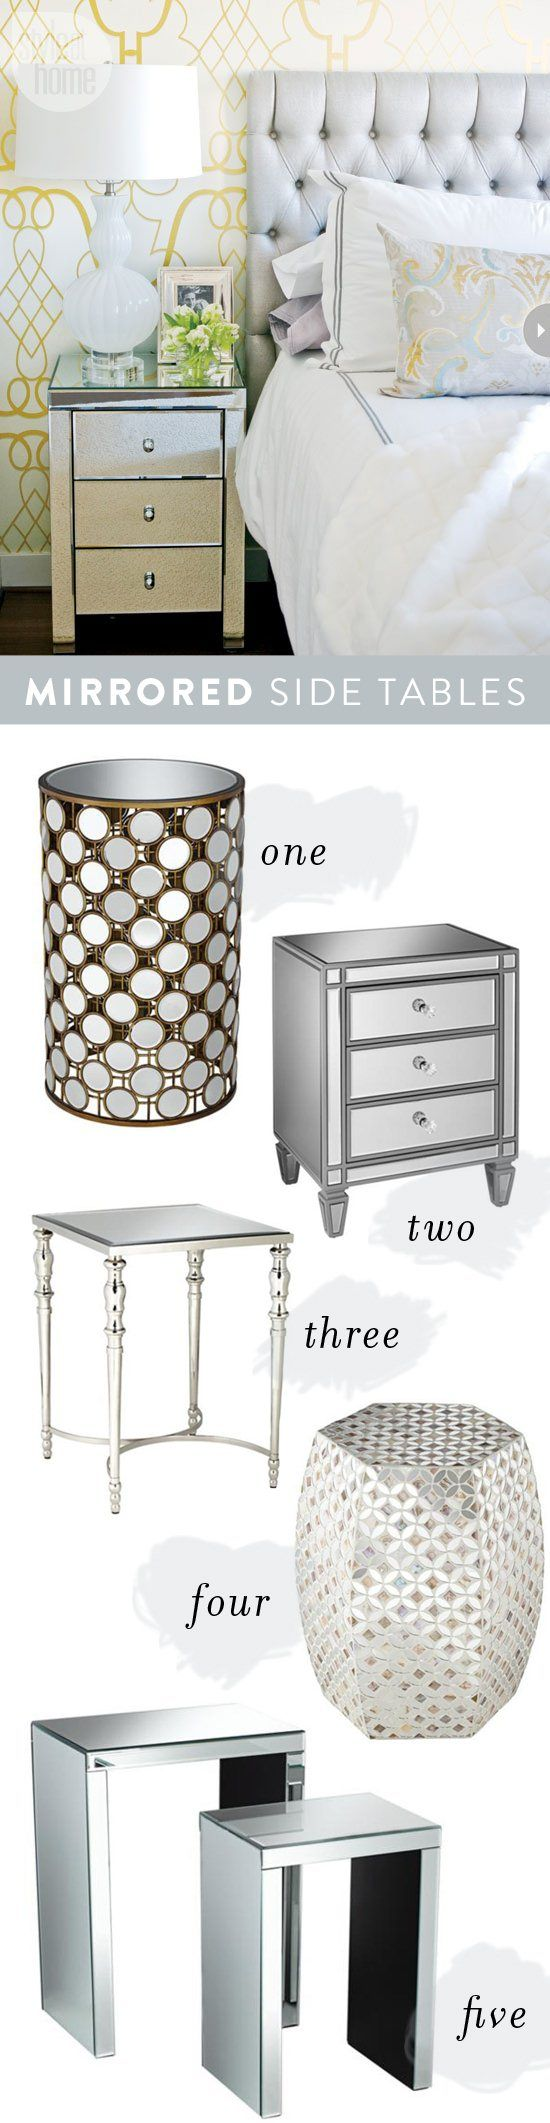 mirrored accent table glamorous bedroom mirrored side tables mirrored